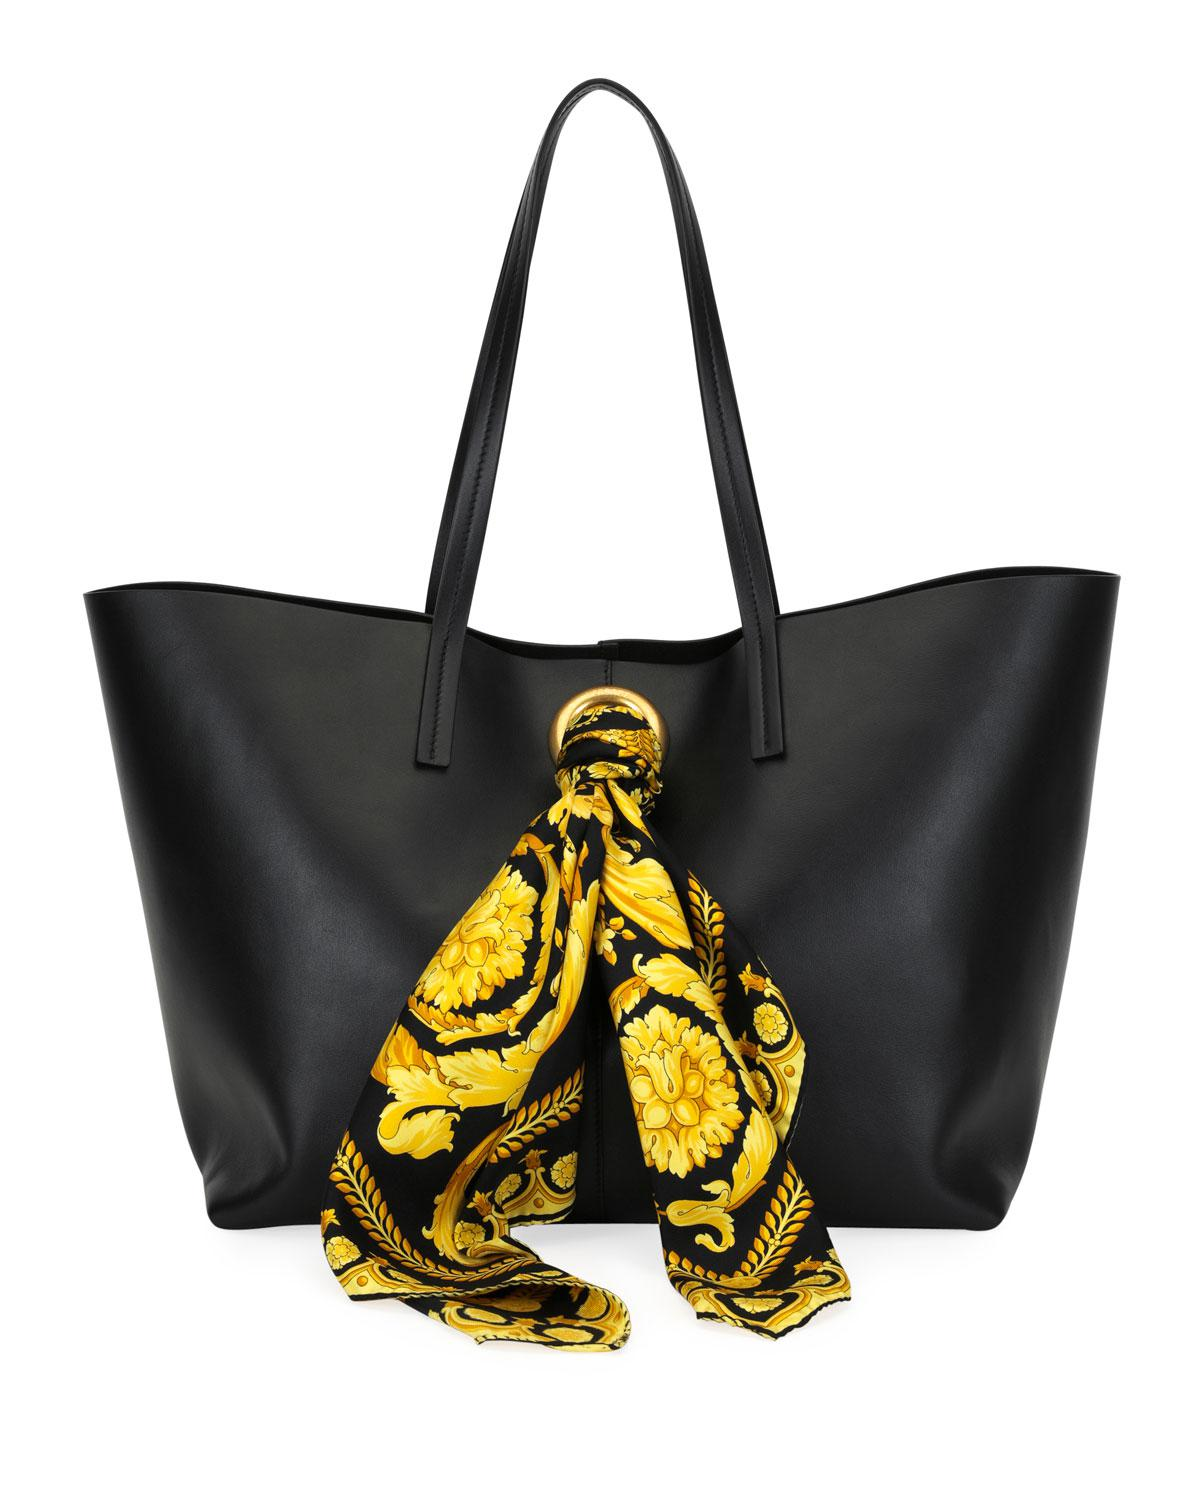 Lyst - Versace Tribute Baroque Scarf Leather Tote in Black - Save 20% 09861e020b9bd